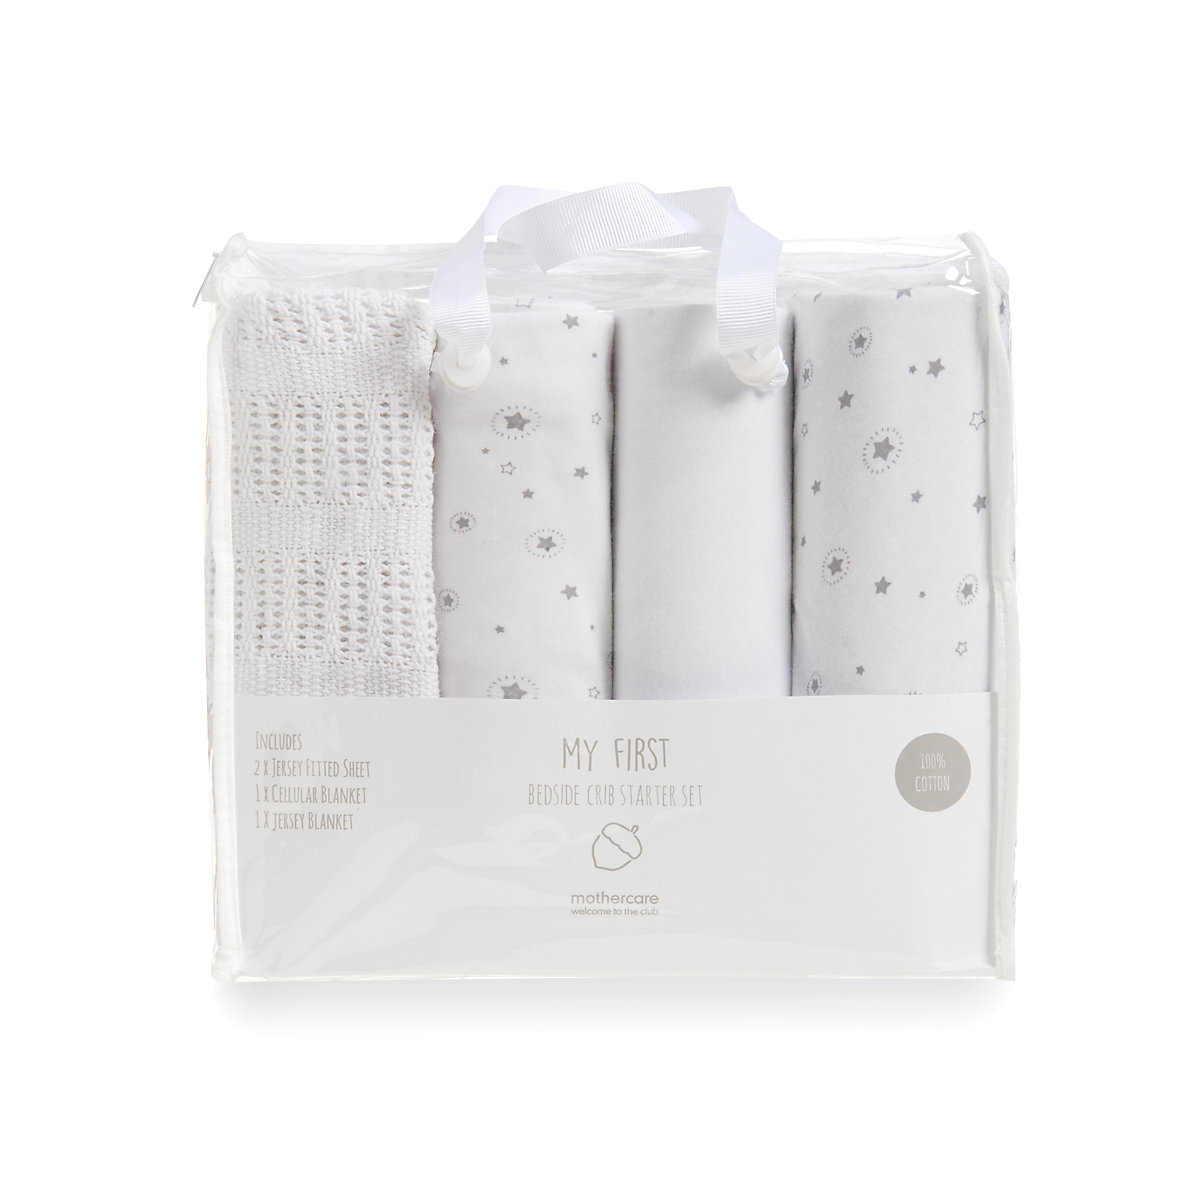 mothercare bedside crib bedding set